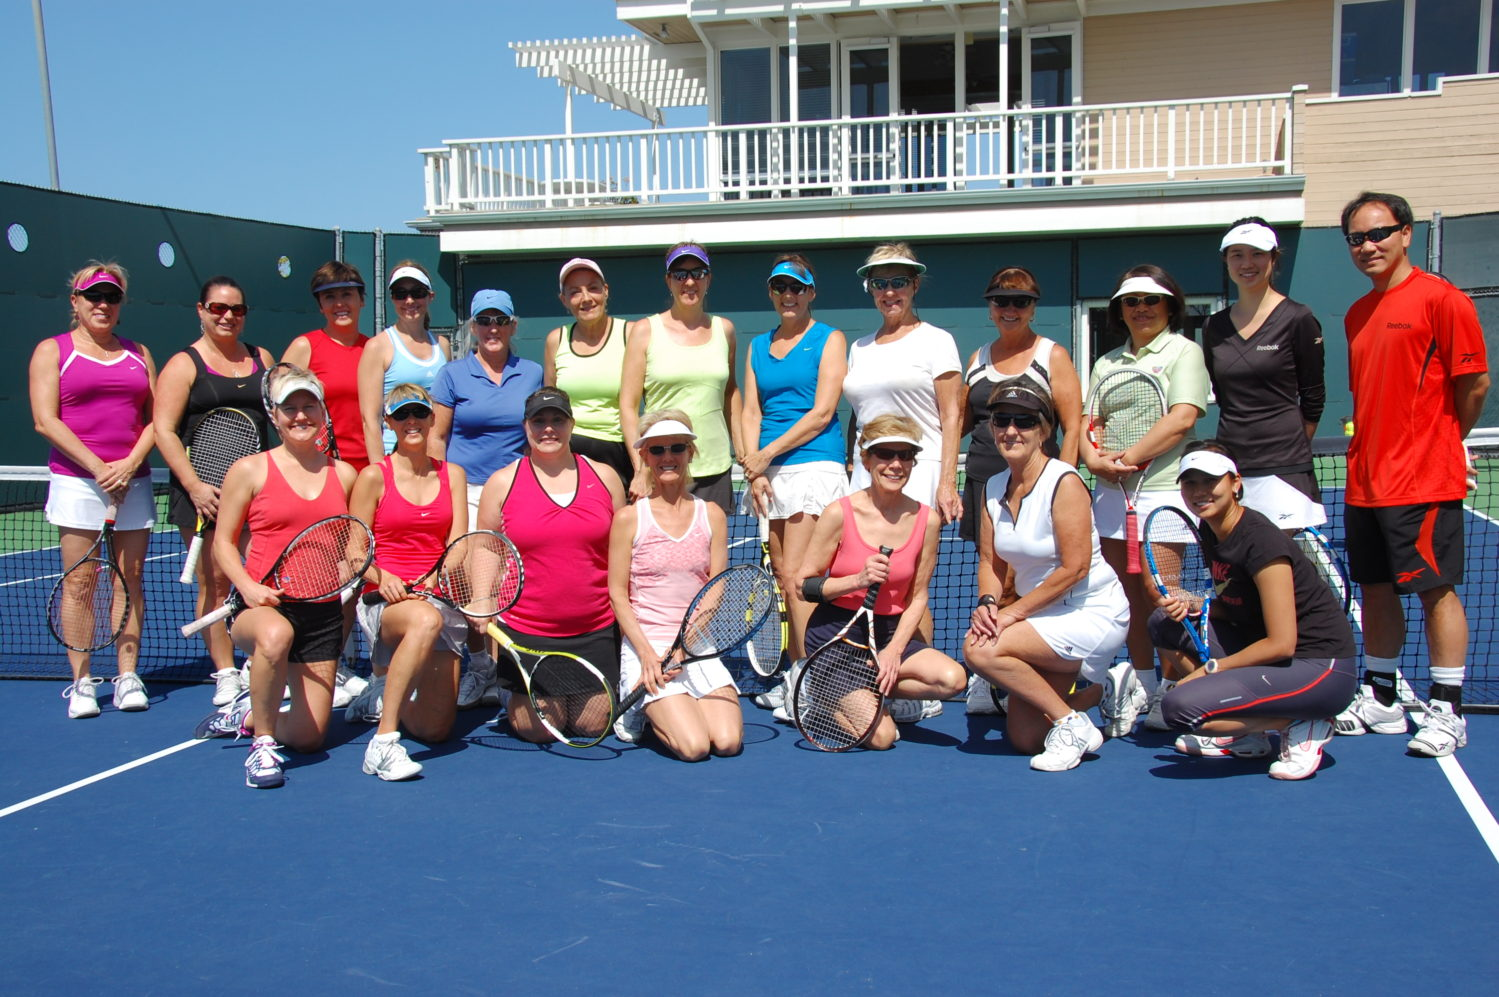 Dana Hills Tennis Center - Dana Point, CA LEDL Cheng 2 e1518111997796